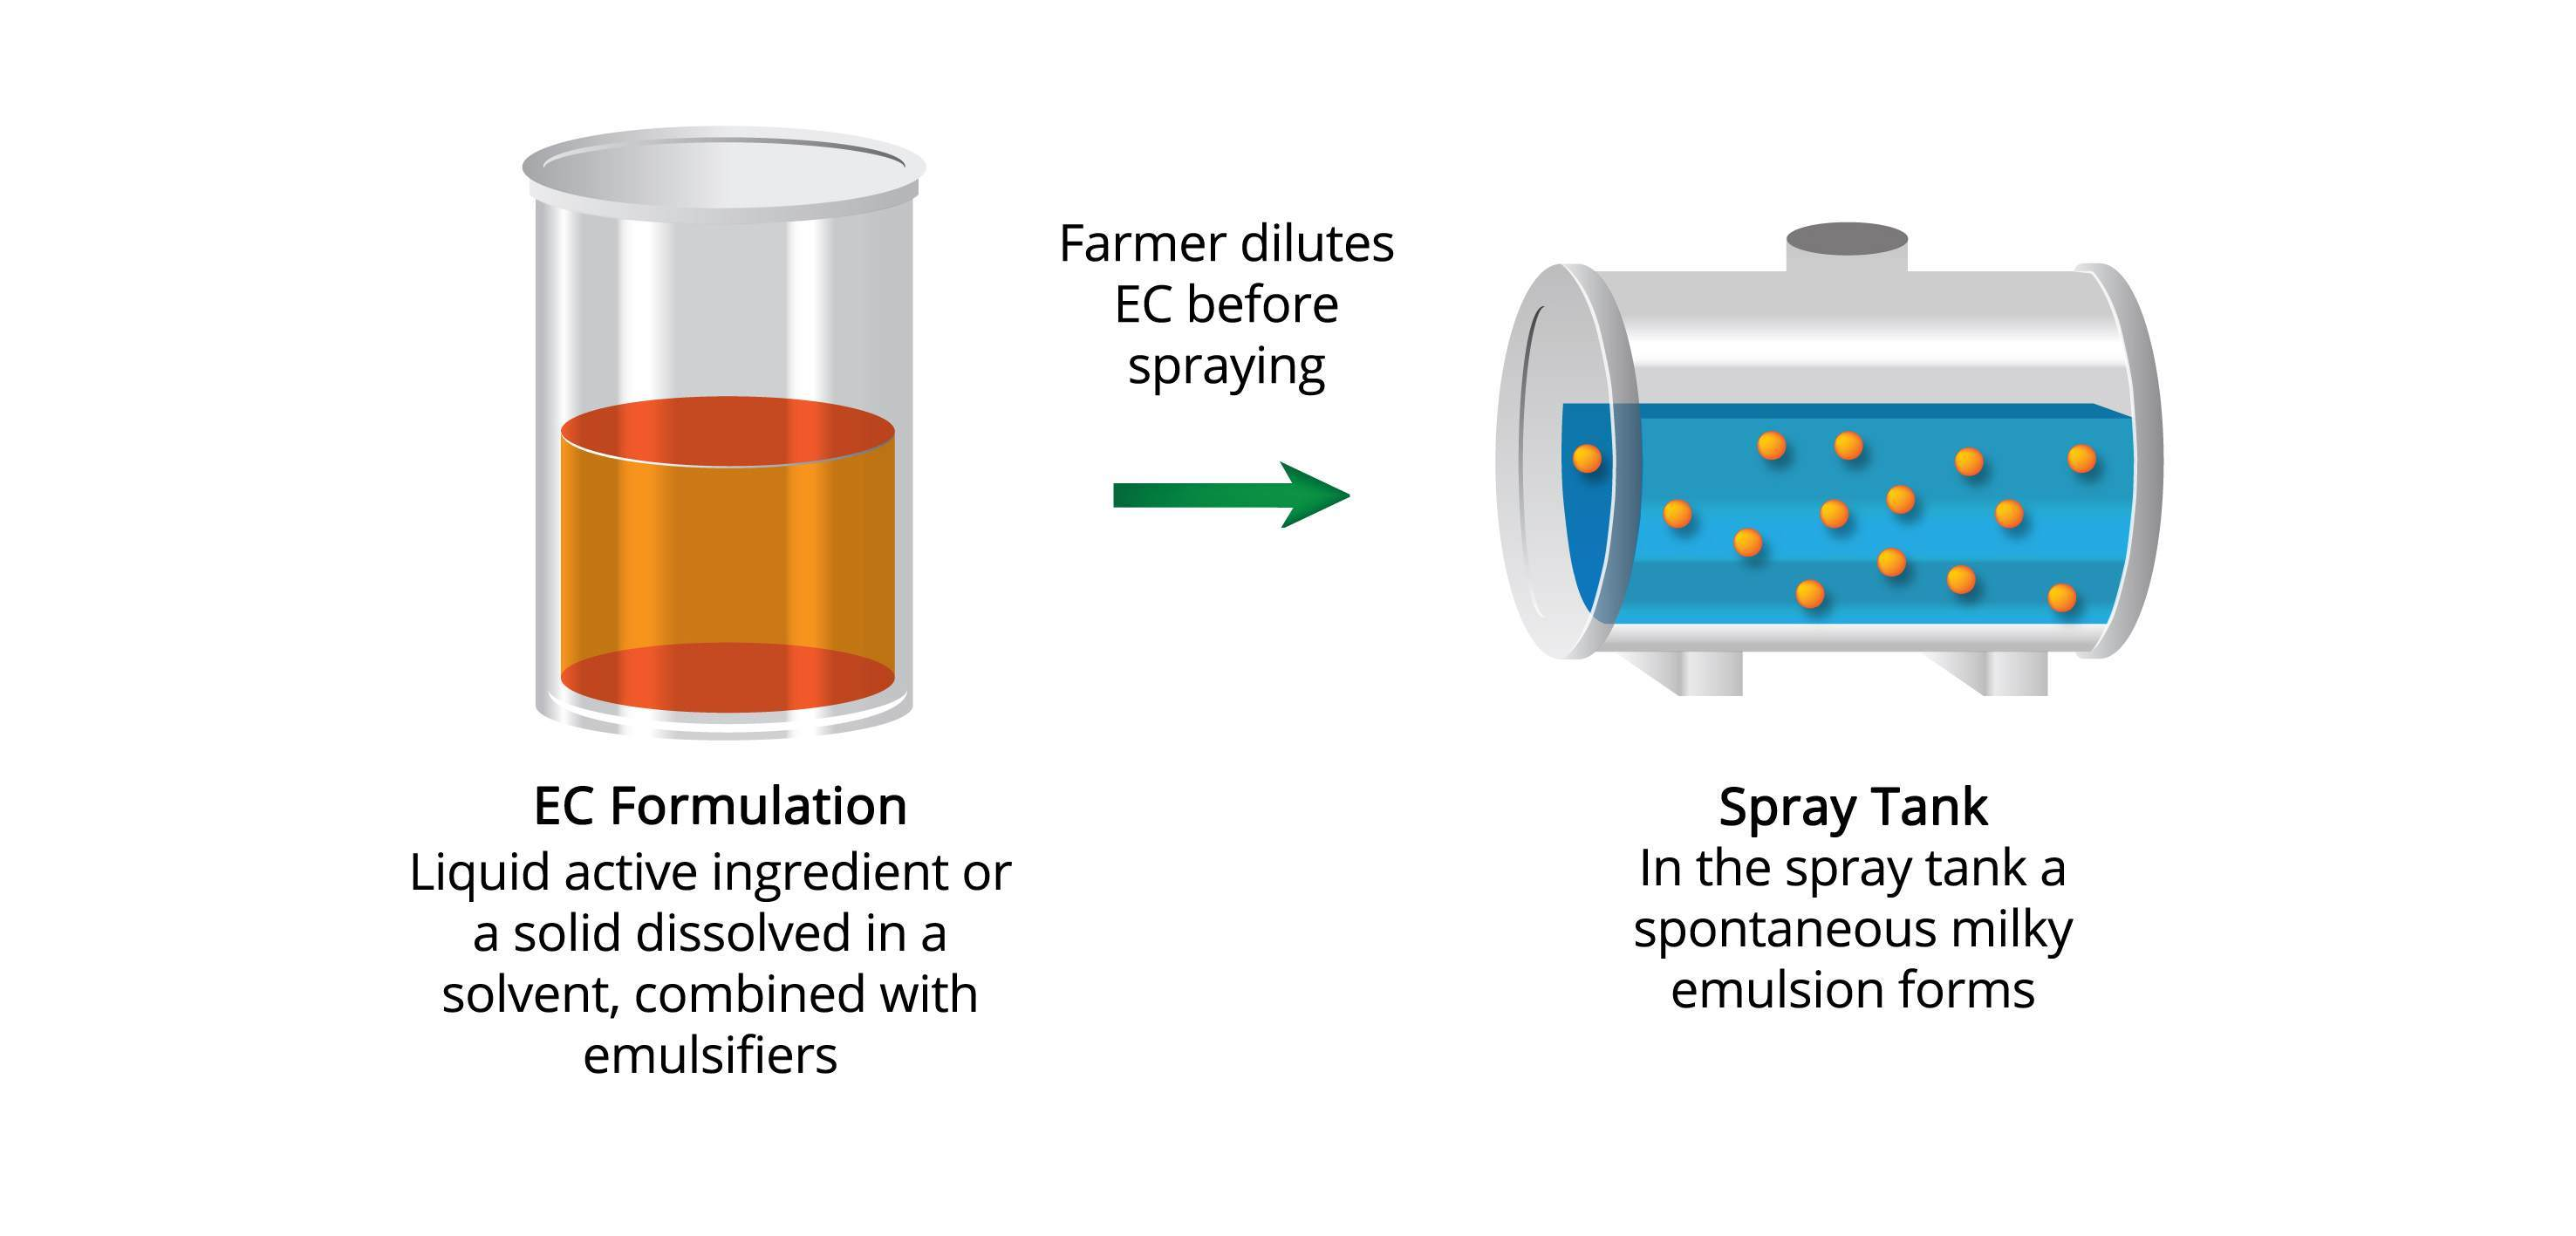 Emulsifiable Concentrate | EC Formulations | Croda Crop Care